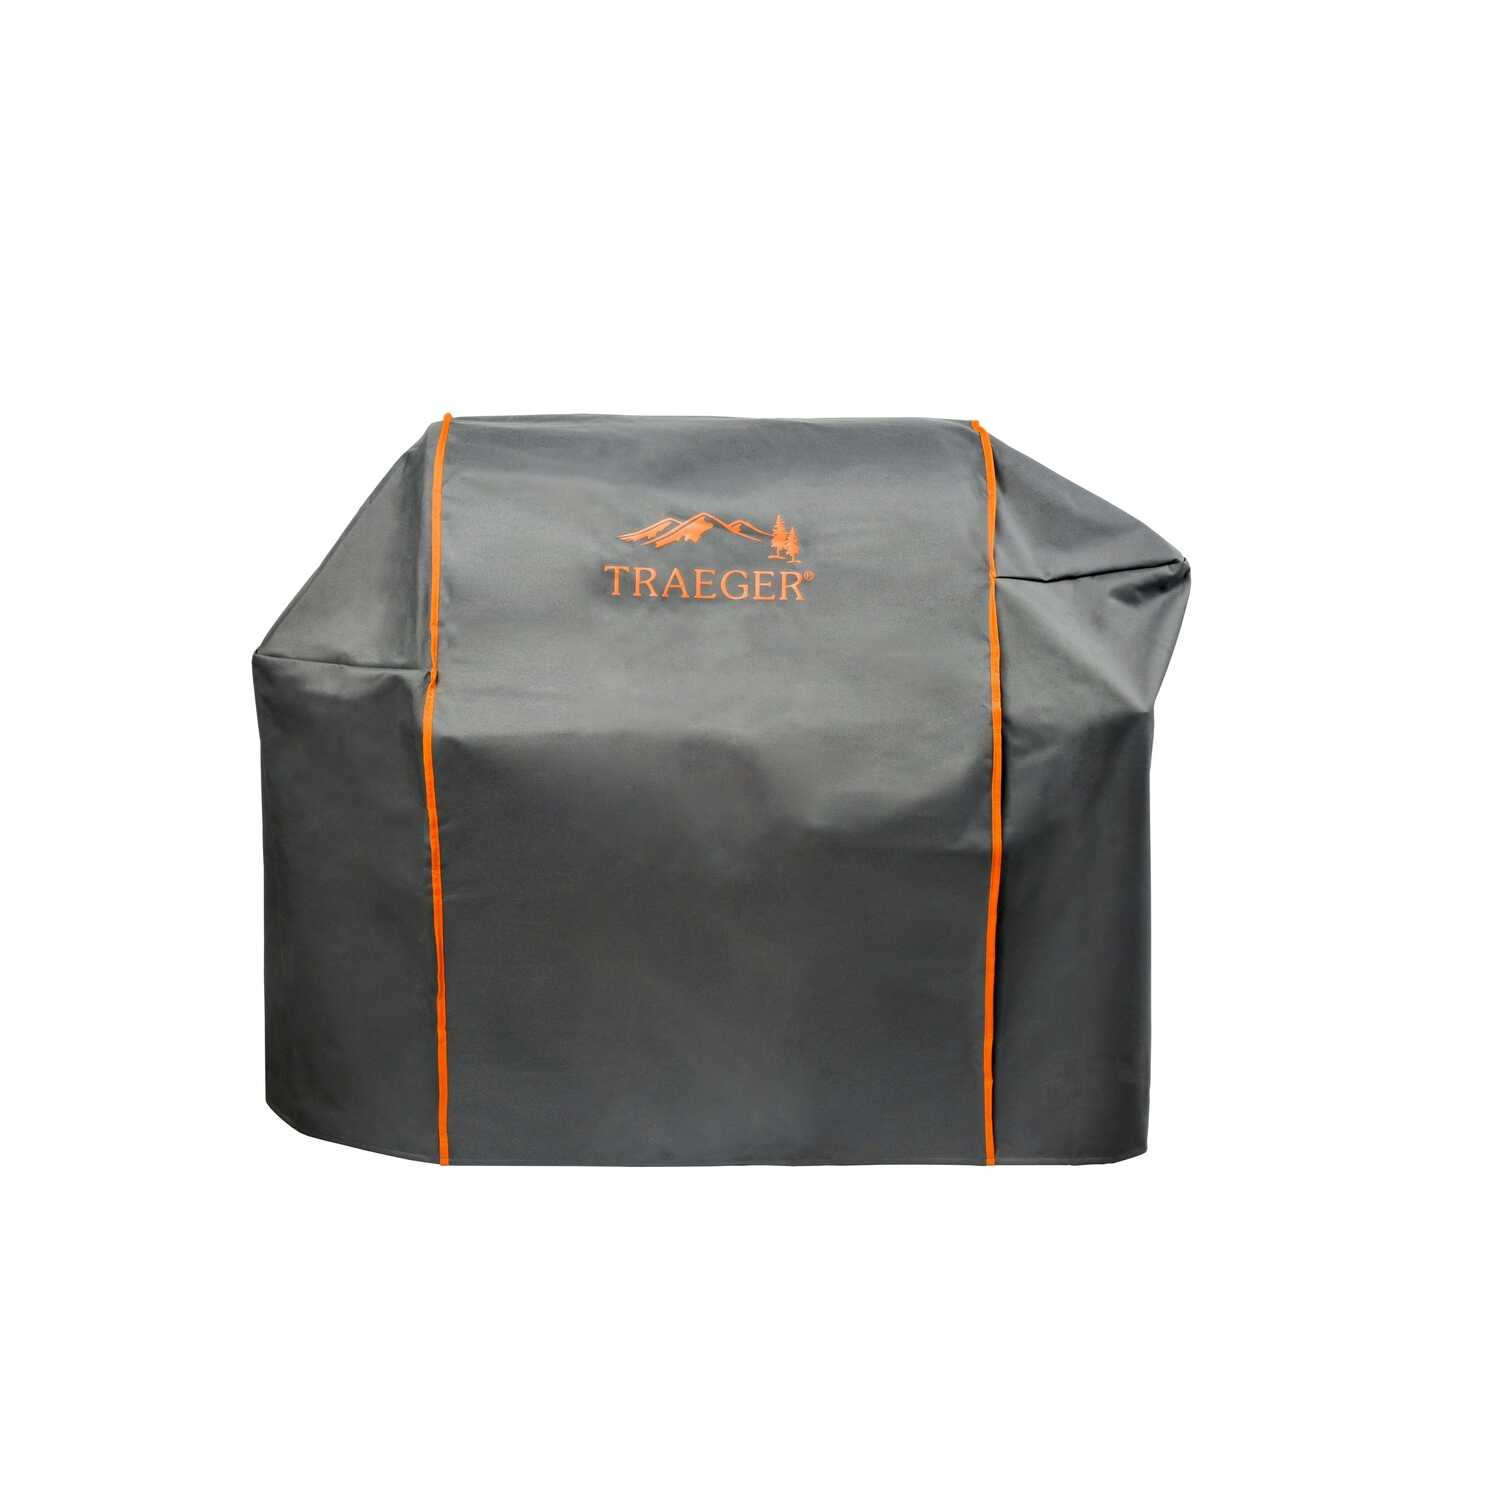 Traeger  Timberline 1300  Gray  Grill Cover  4.5 in. W x 11.5 in. D x 10.5 in. H For Timberline 1300